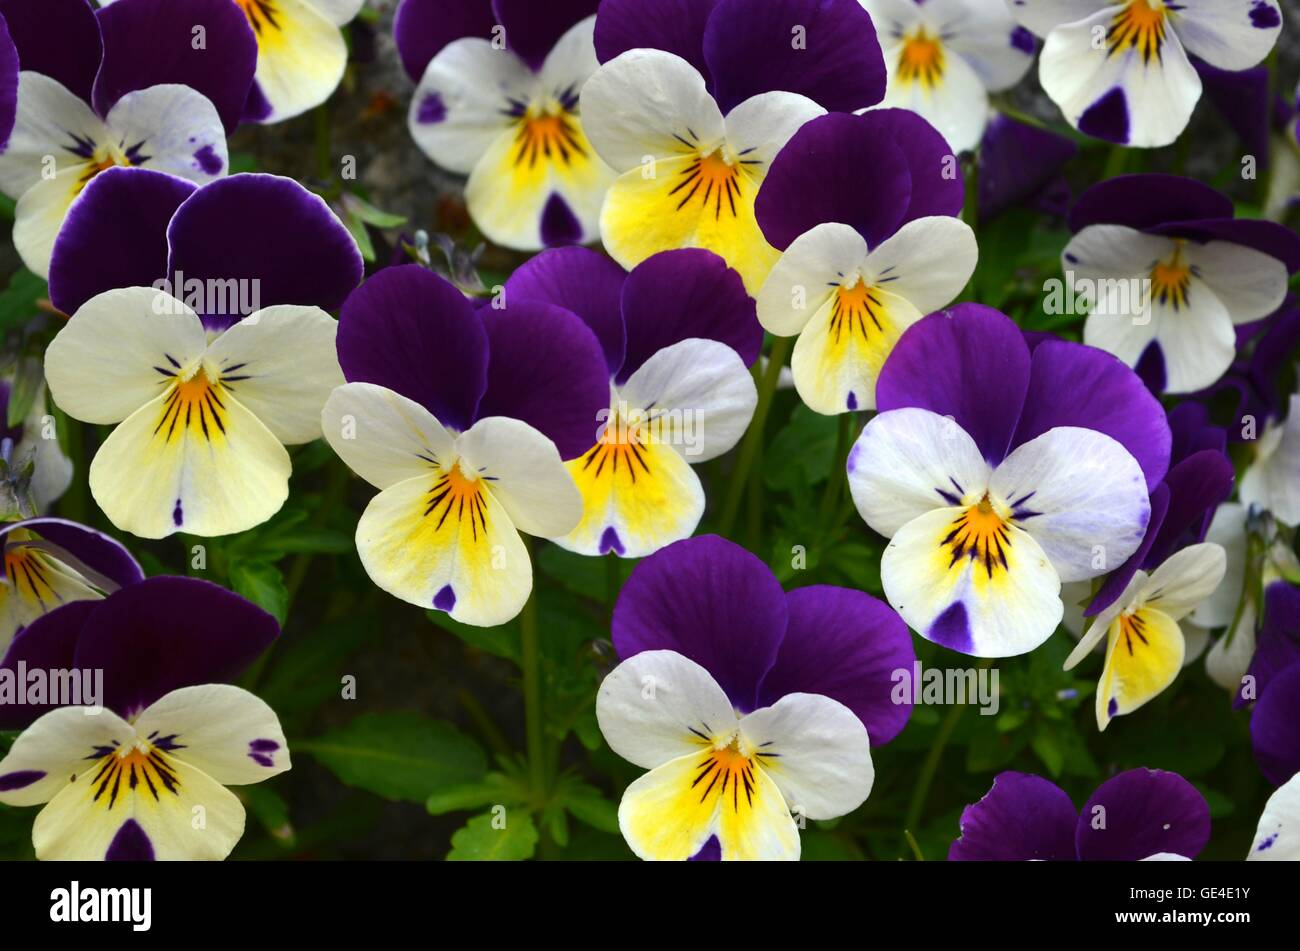 Group of Purple Pansies with White and Yellow Sunburst Center - Stock Image